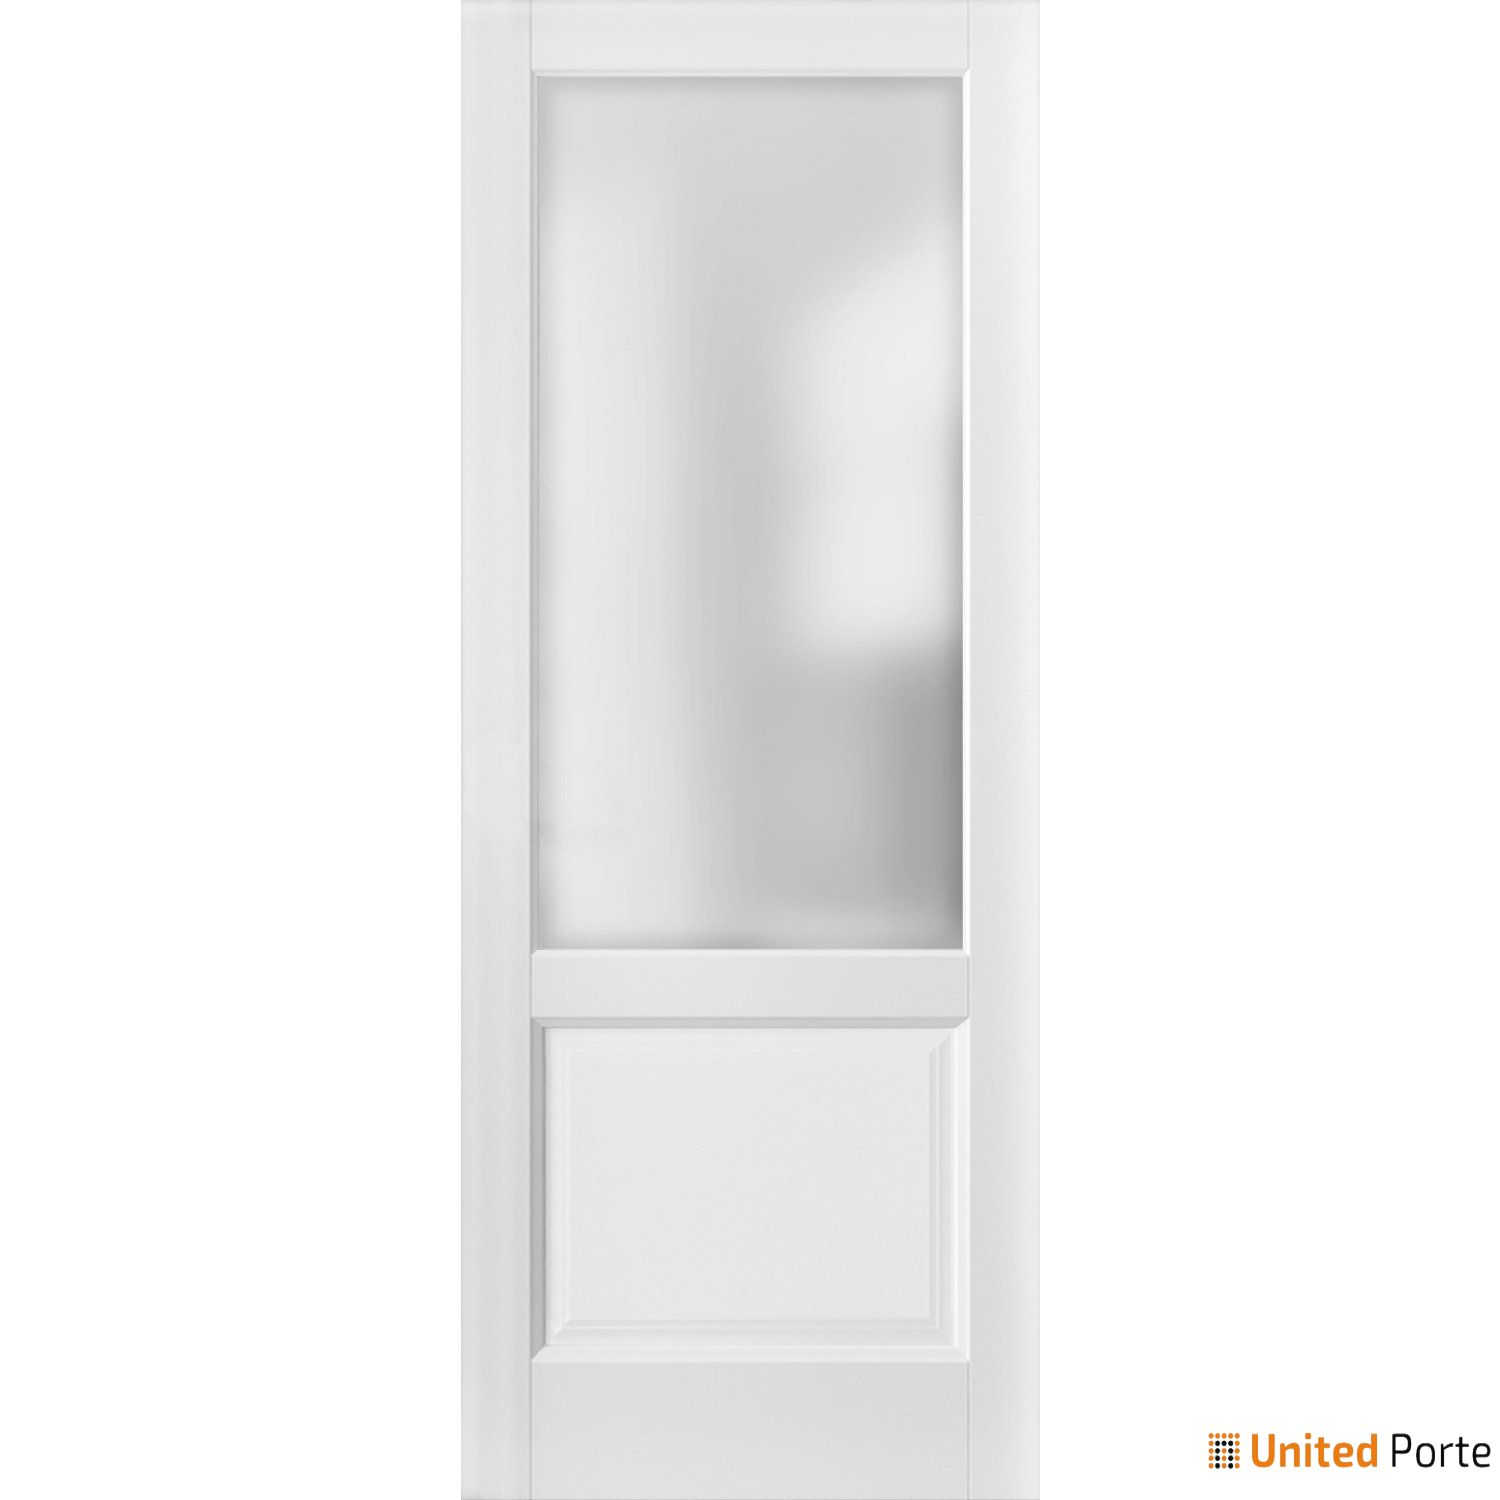 Lucia 22 White Silk with Frosted Opaque Glass Sliding Barn Door Slab | Lite Wooden Solid Panel Interior Barn Doors